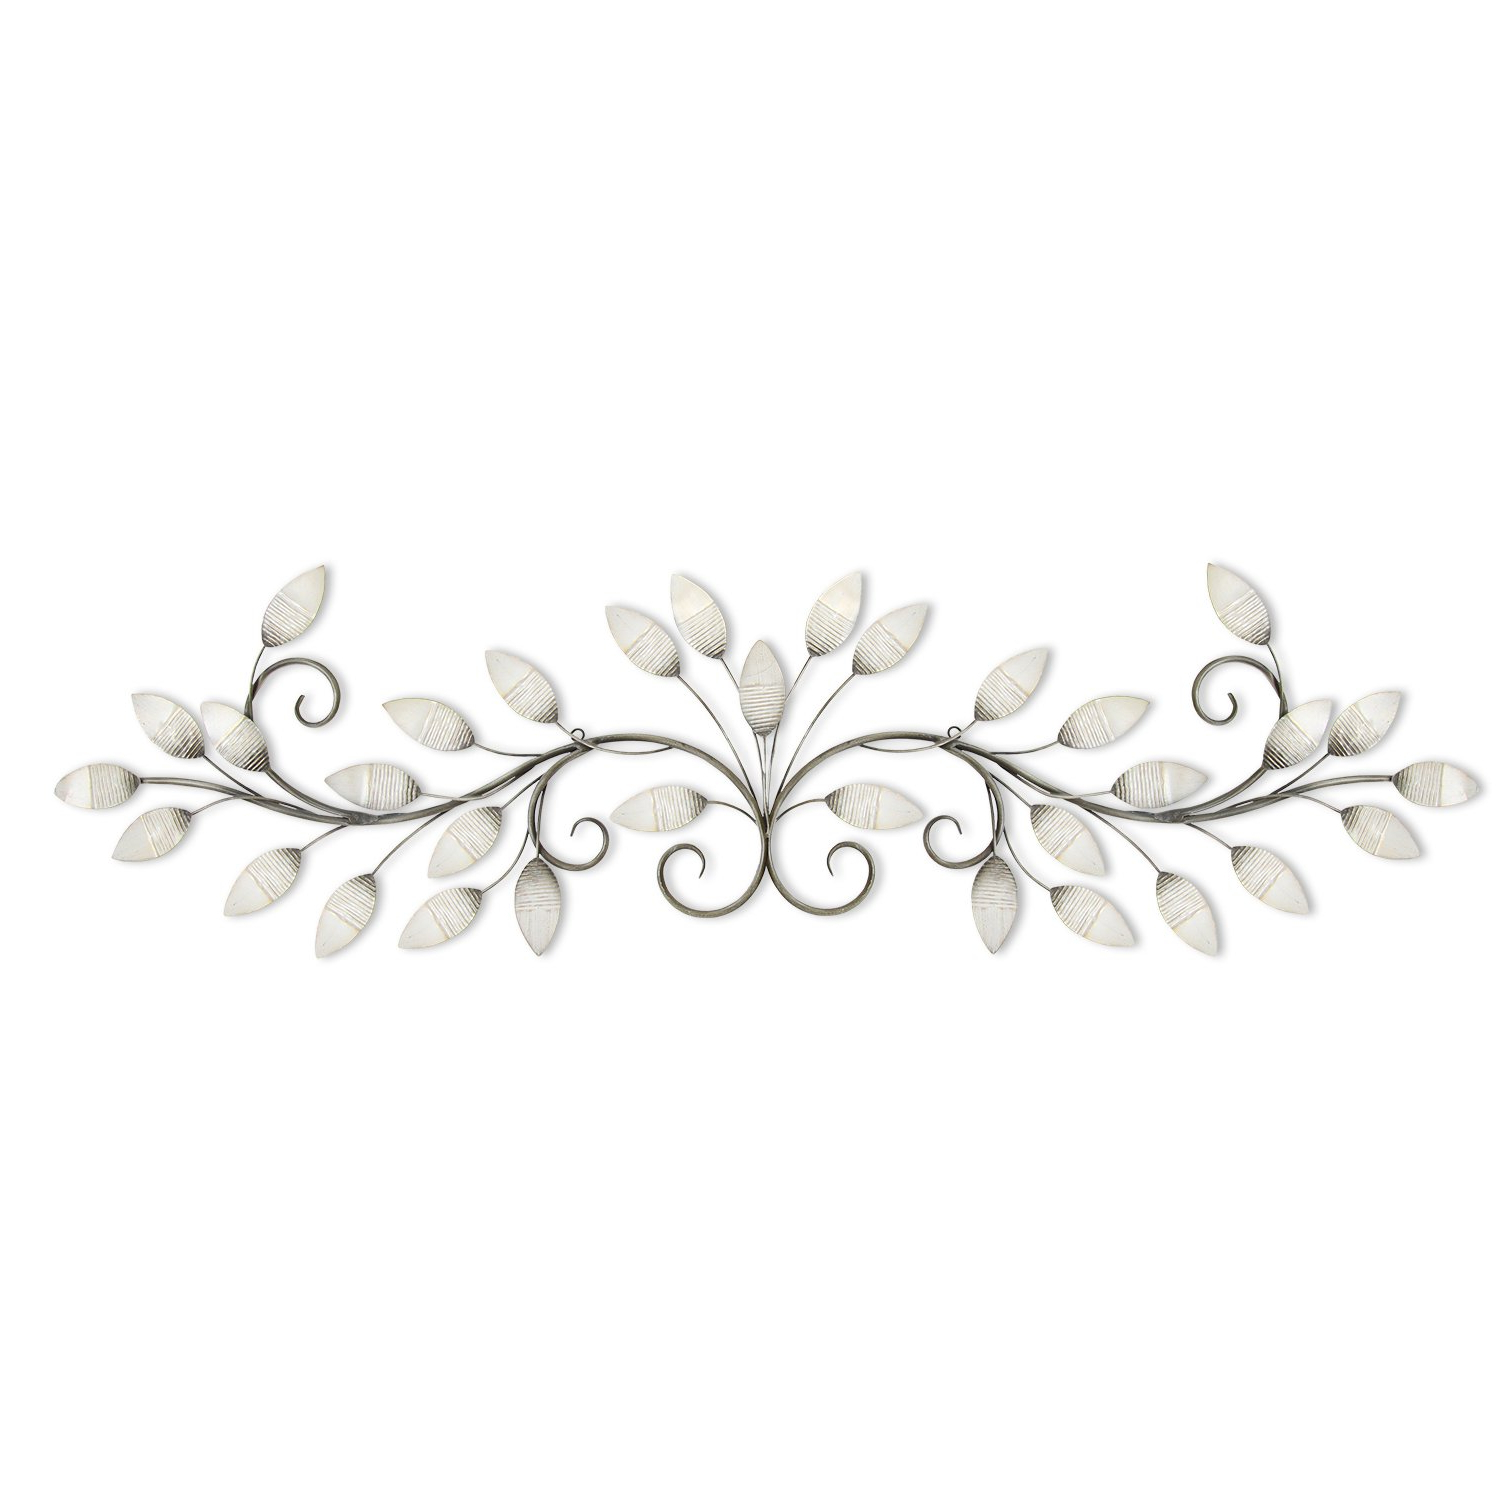 Brushed Pearl Over The Door Wall Decor Regarding Fashionable Amazon: Stratton Home Decor S07736 Brushed Pearl Over The Door (View 1 of 20)